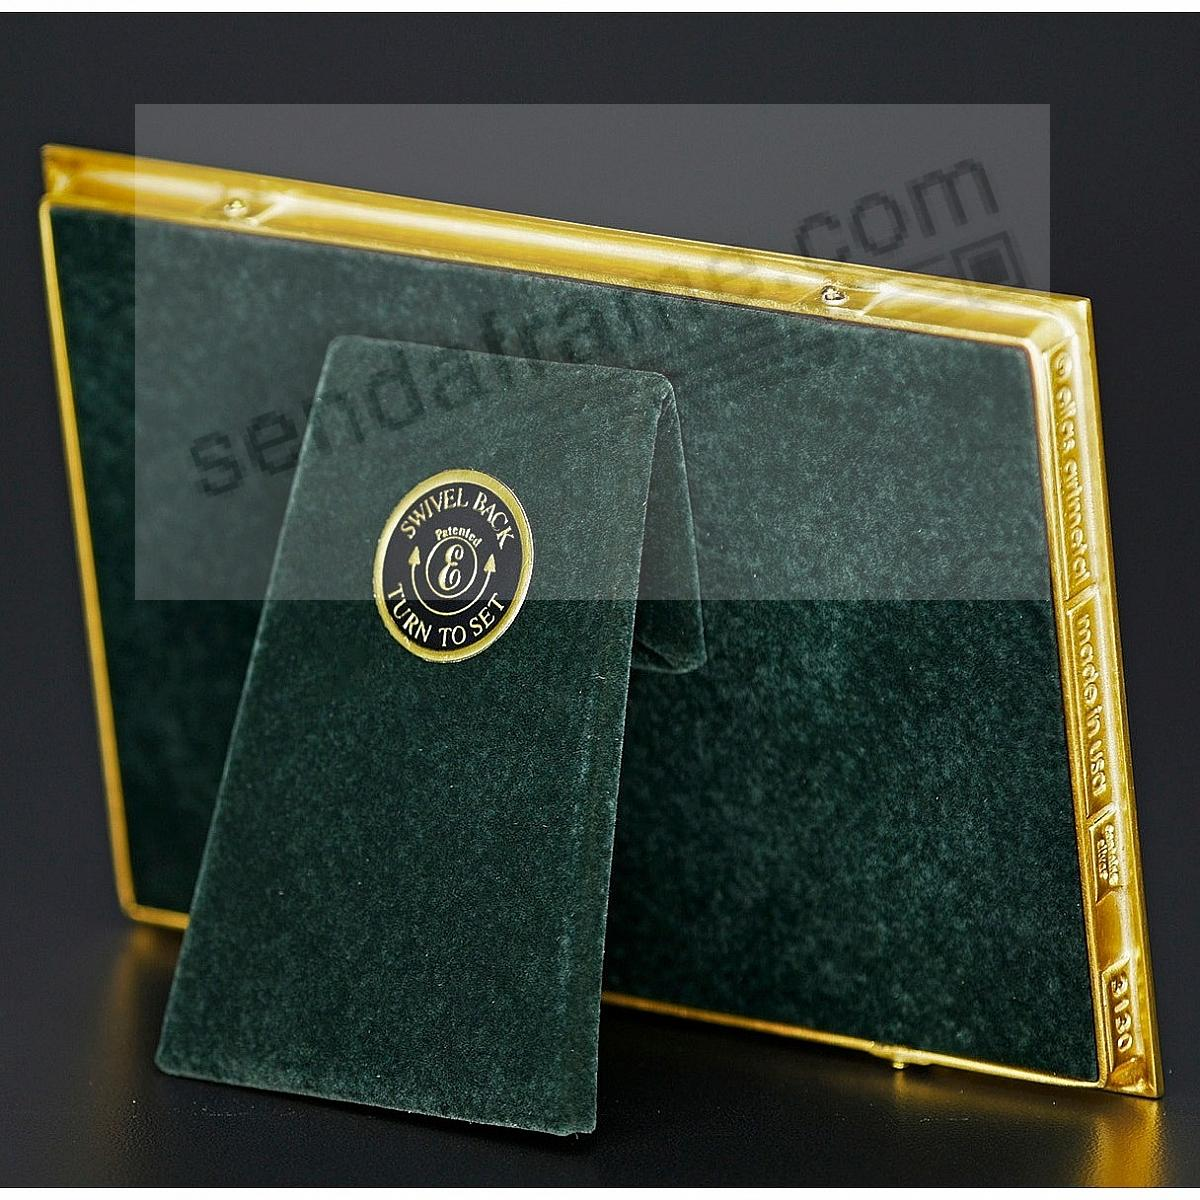 f65db419694 ZIPPER Fine 18kt Museum Gold over Pewter frame 4x6 3½x5½ by Elias Artmetal®  - Picture Frames